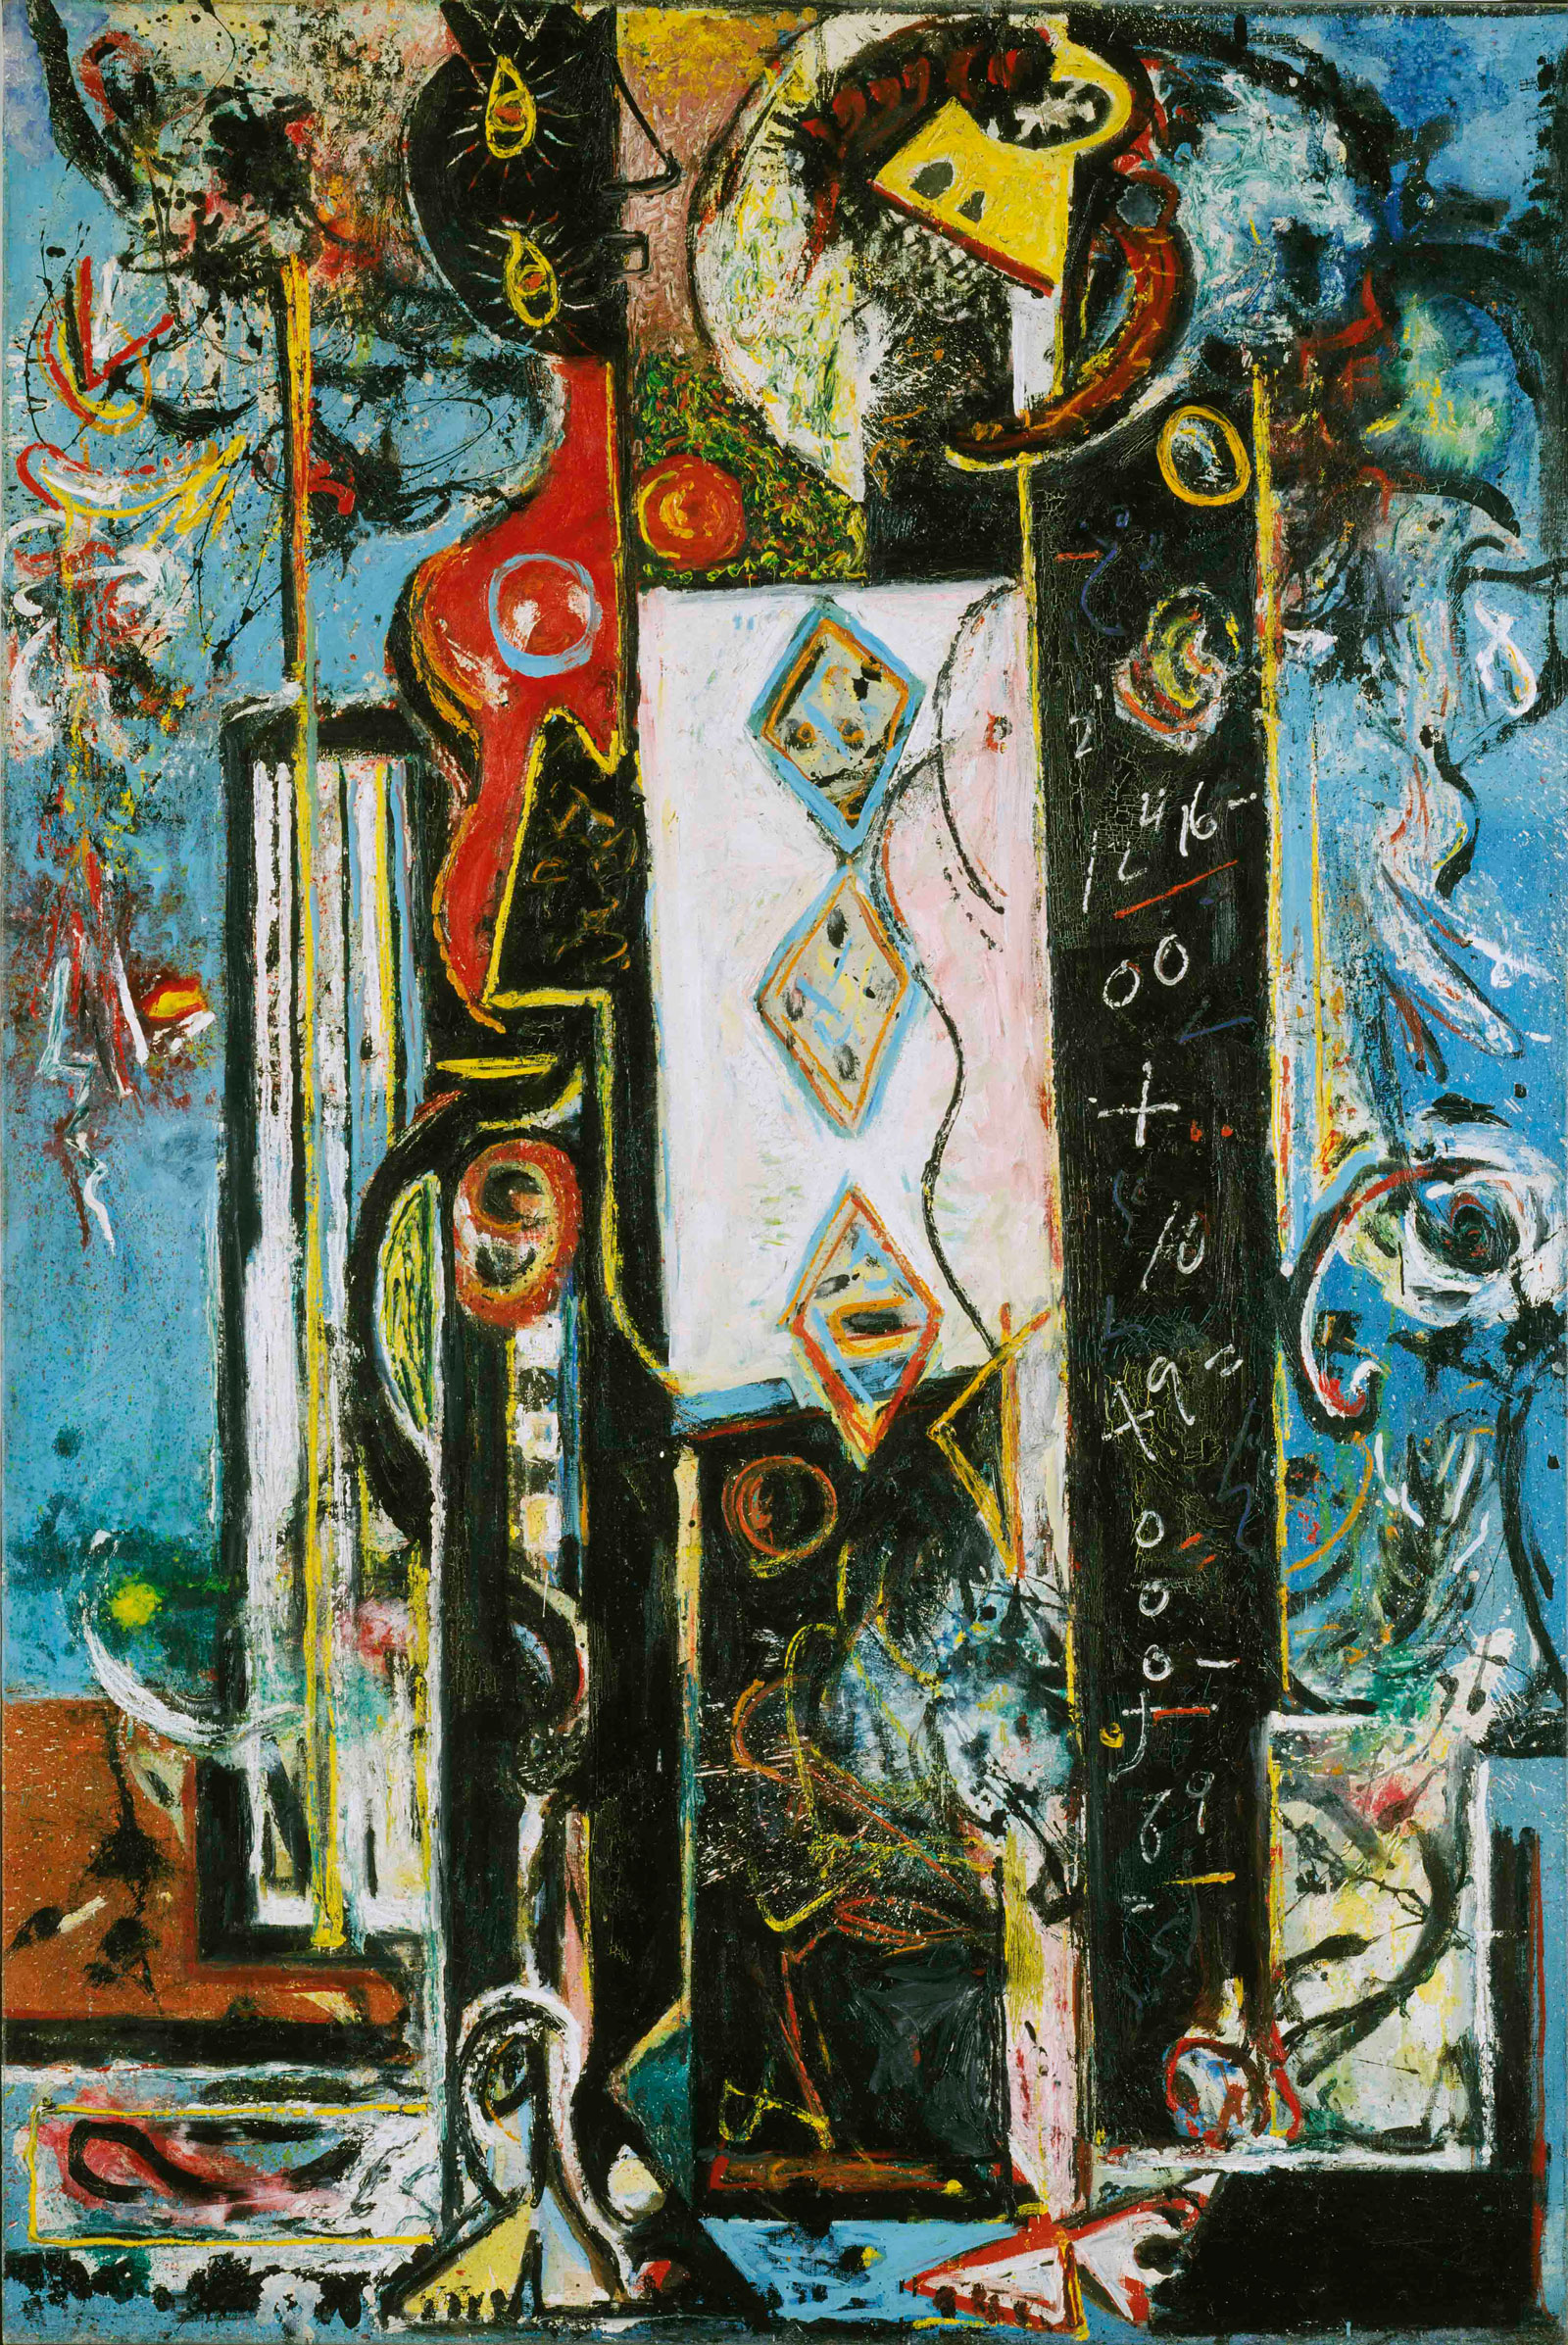 Jackson Pollock: Male and Female, 1942-43; click image to enlarge